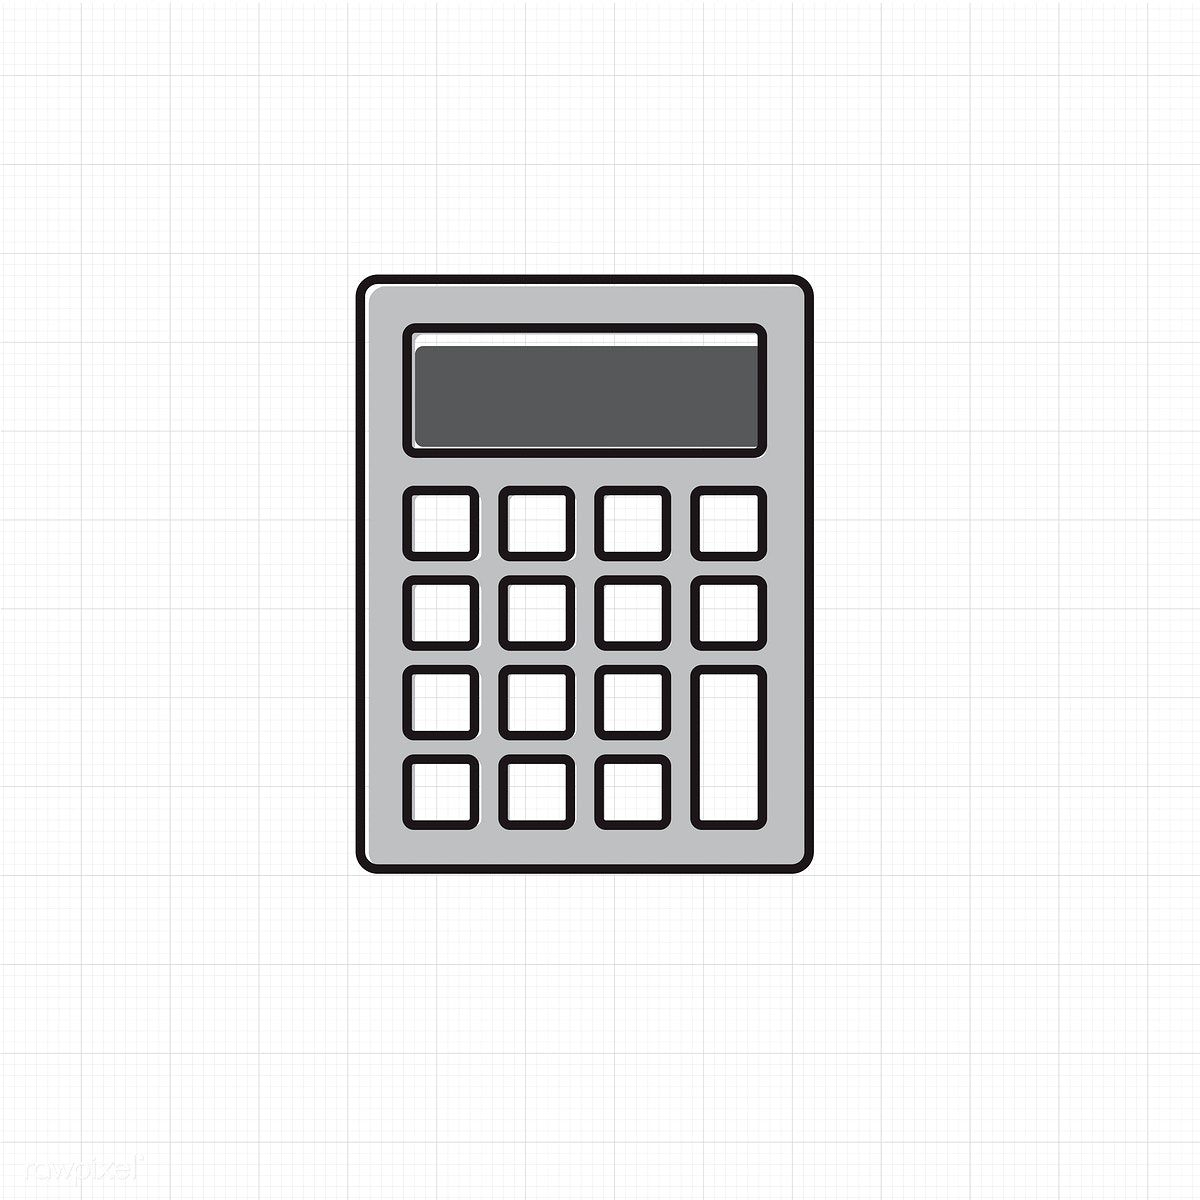 Vector of calculator icon free image by